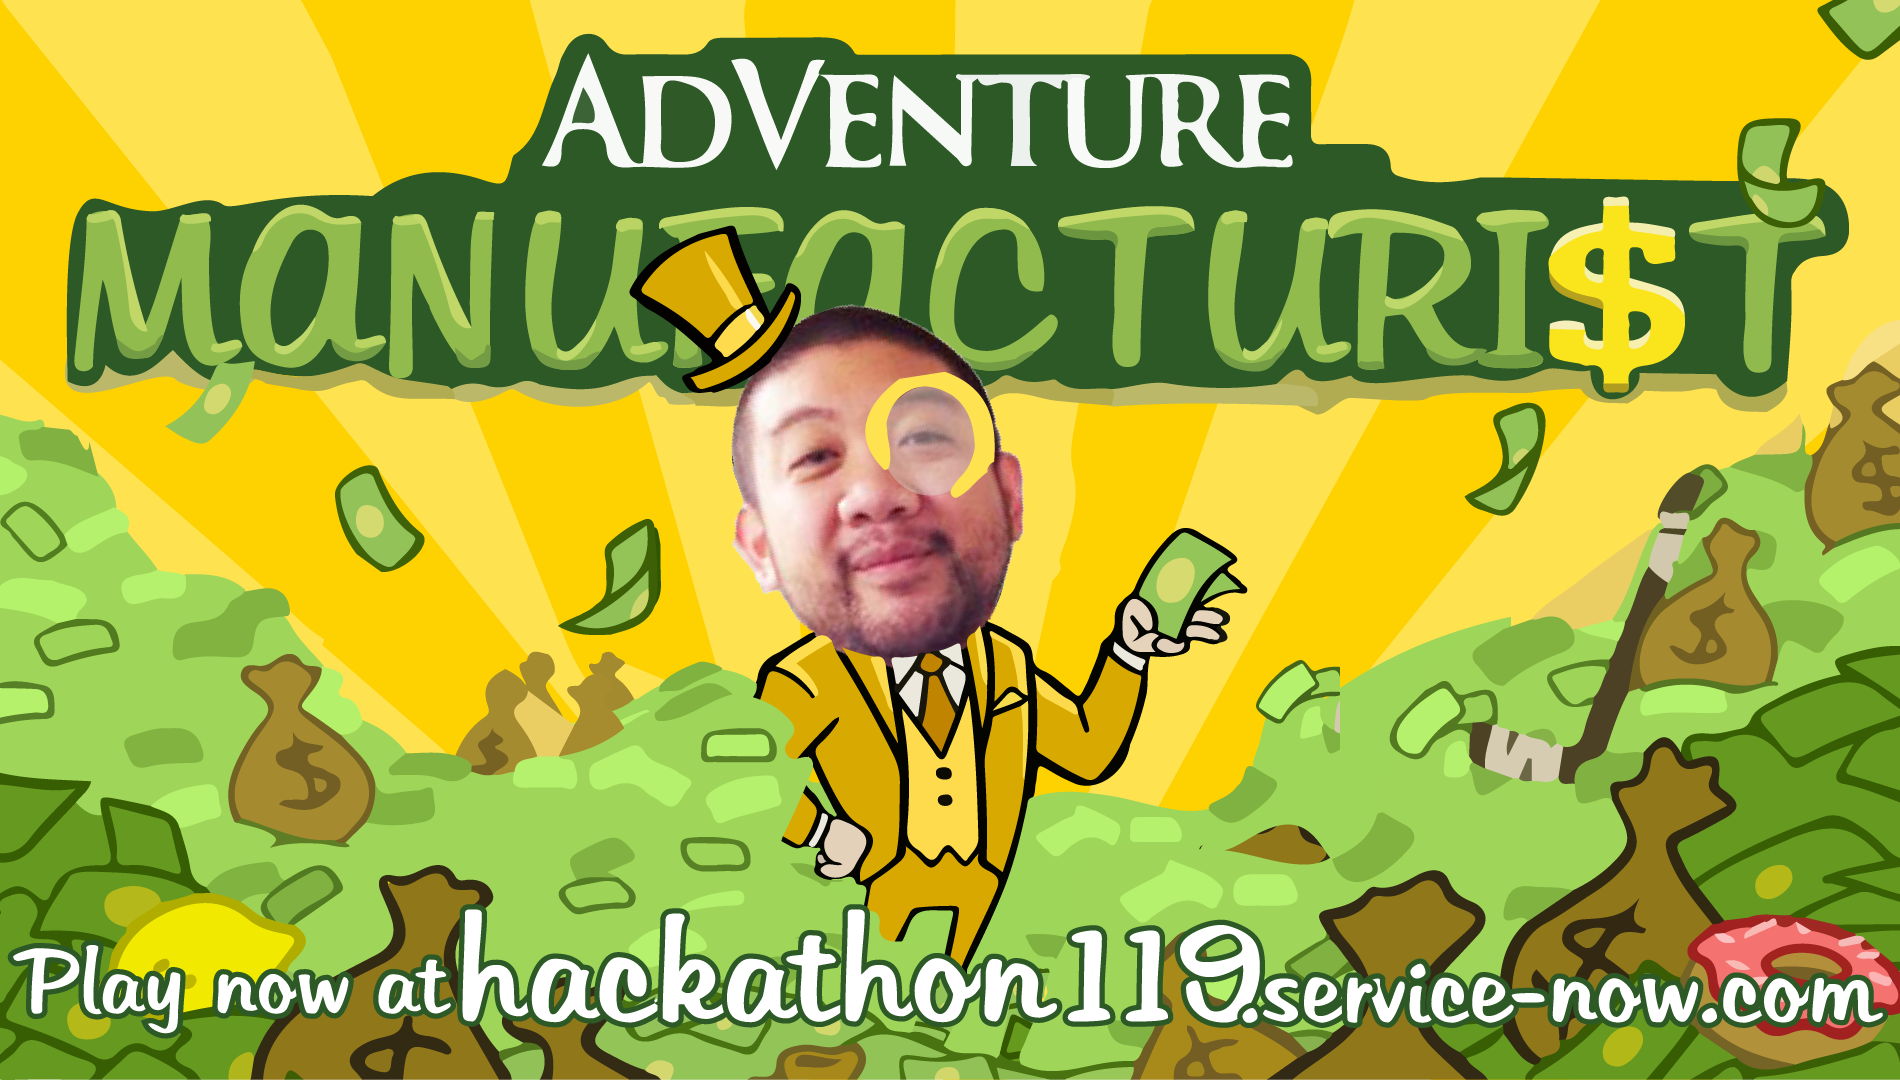 the AdVenture Capitalist logo but fitted for my app instead